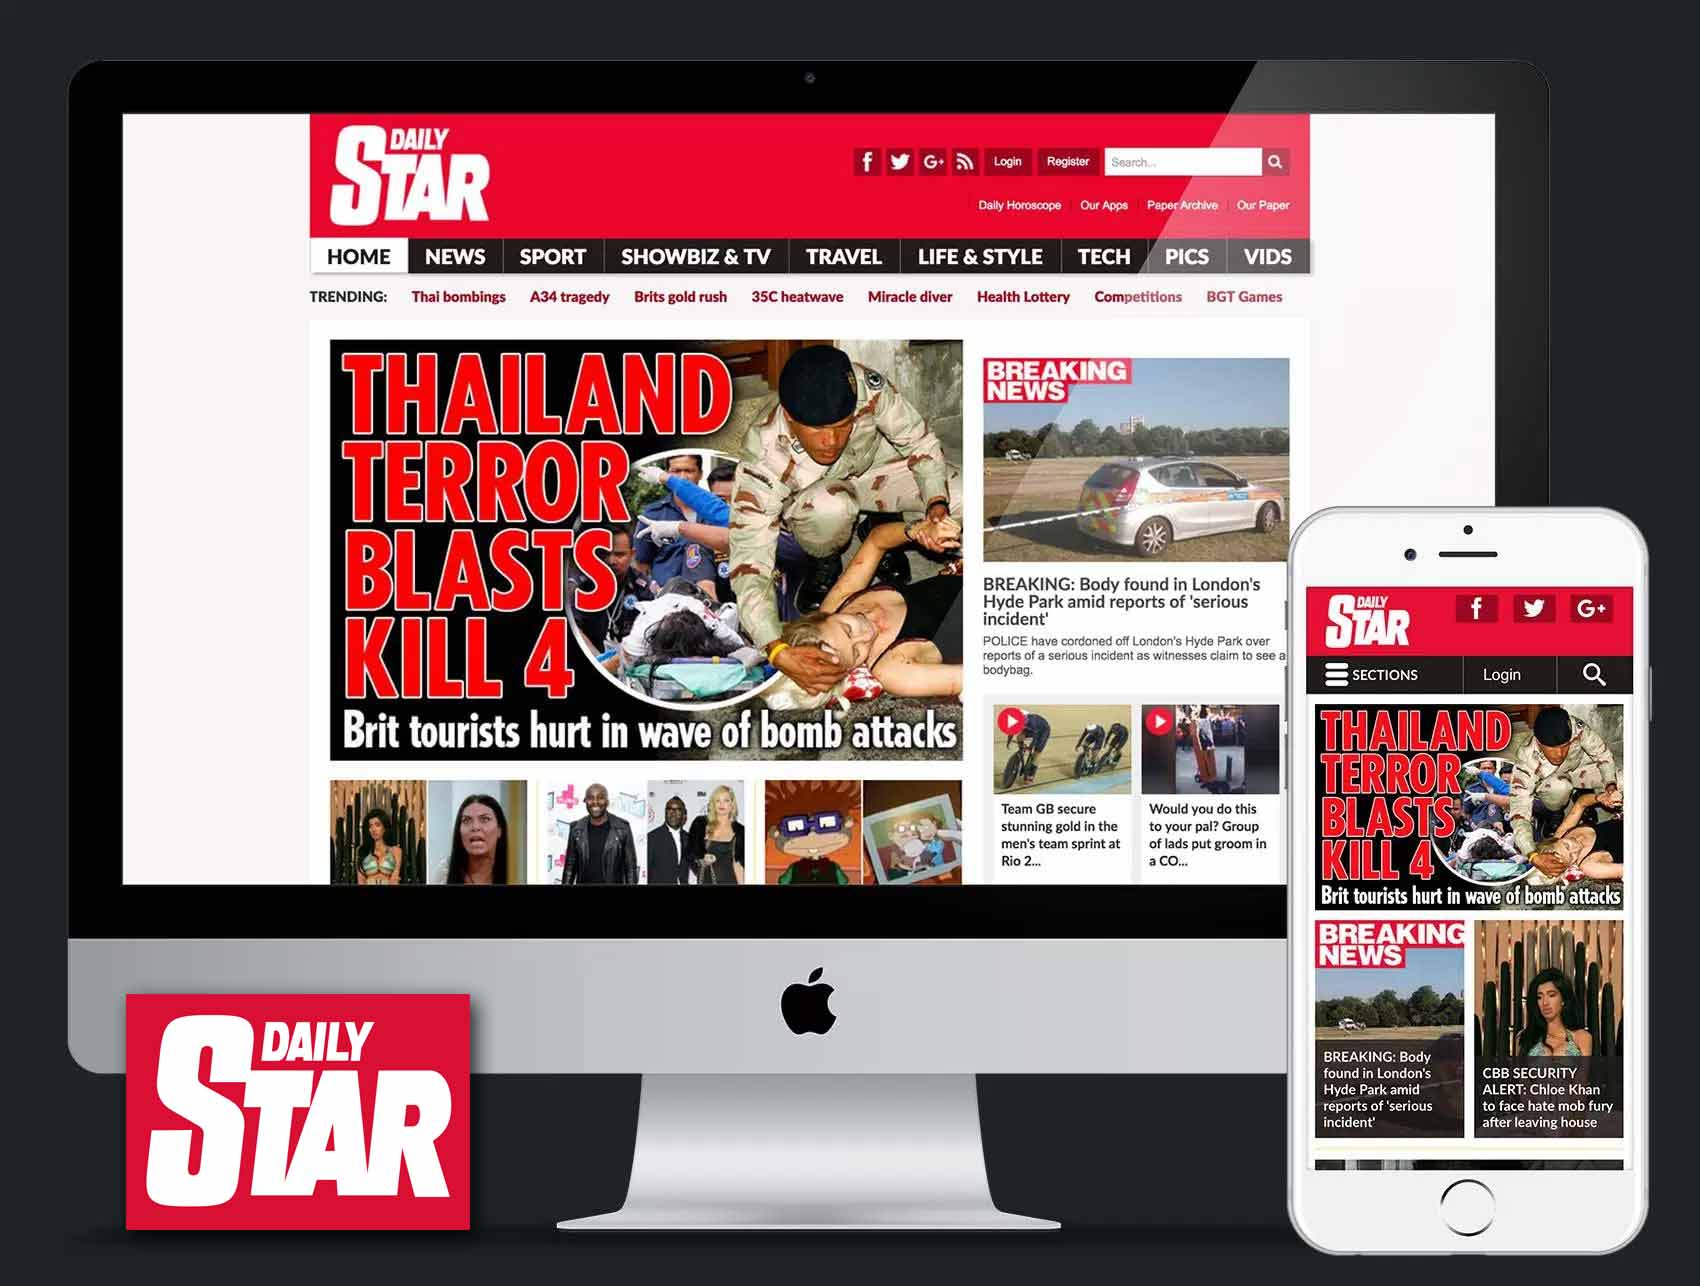 Daily Star: Website Redesign, UX & UI